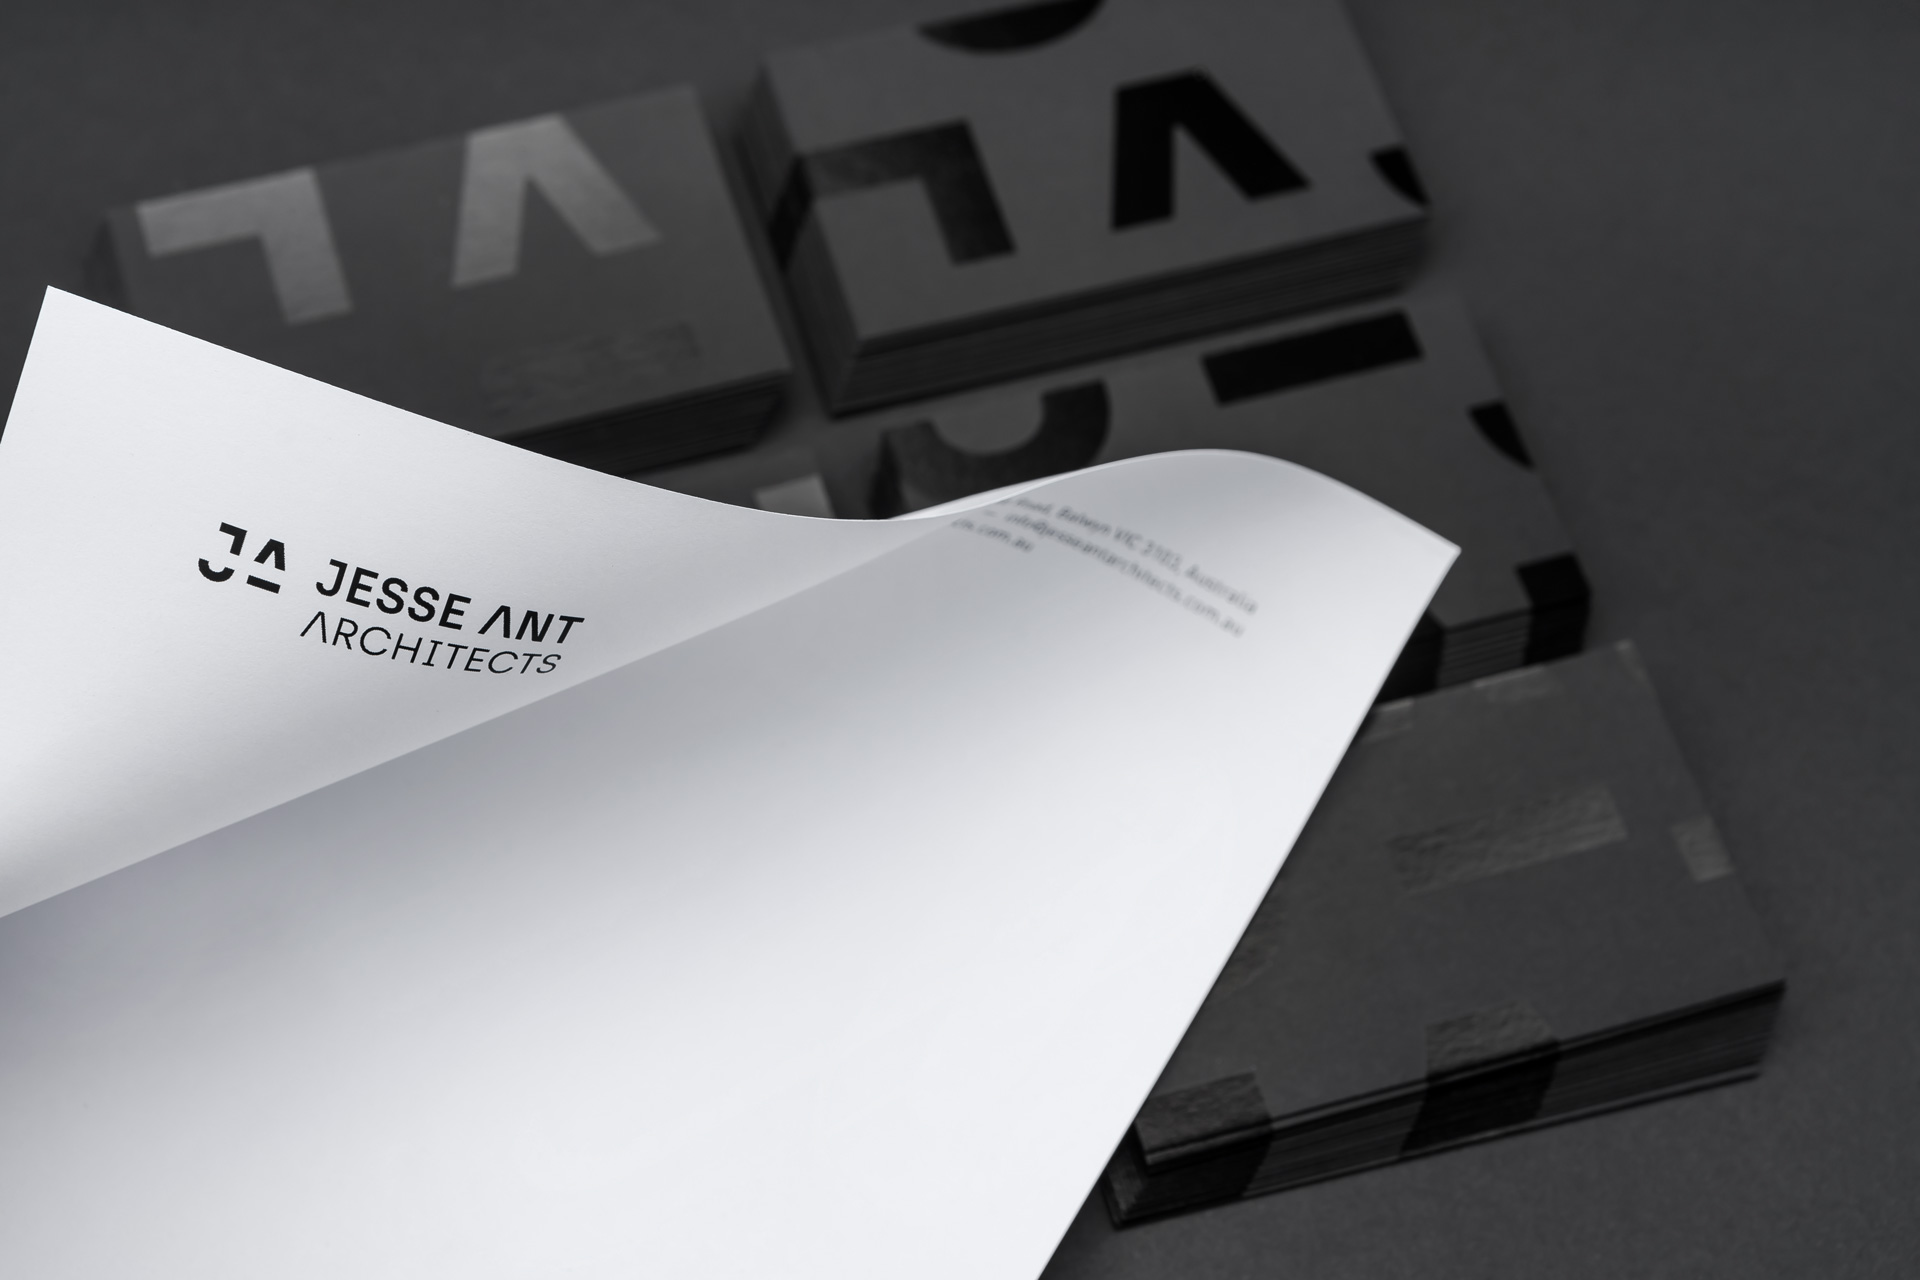 Jesse Ant Architects branding